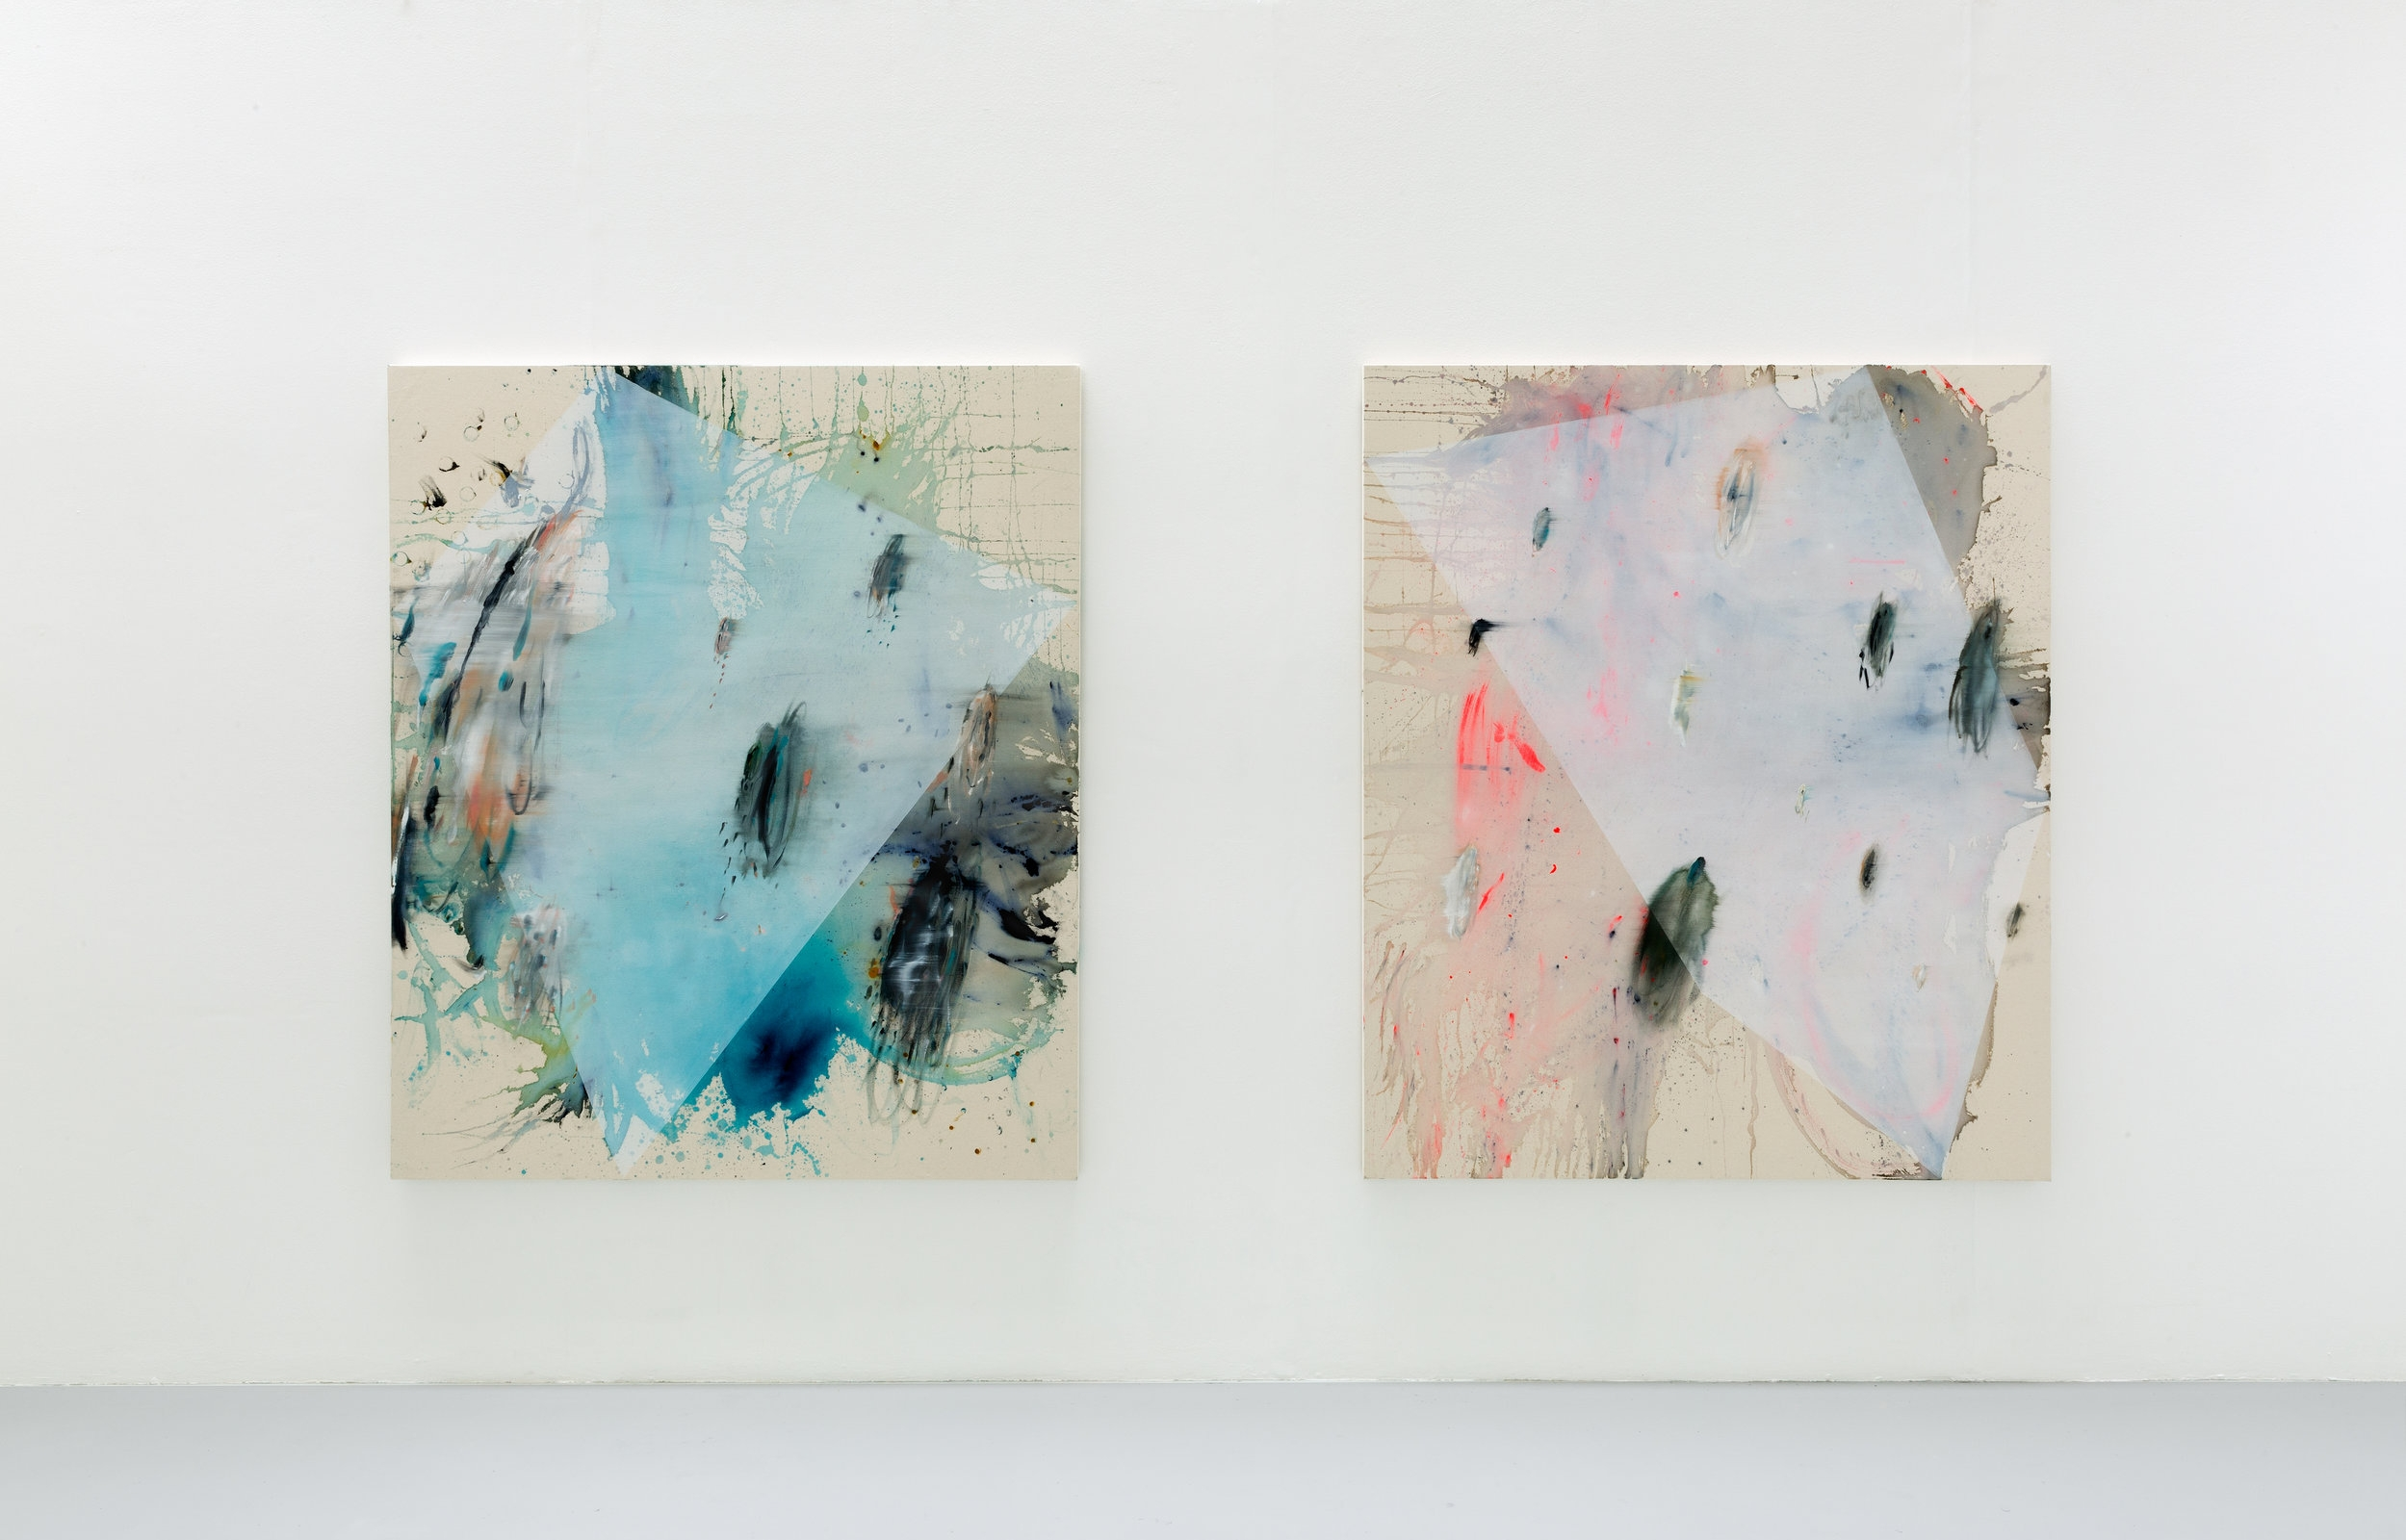 left to right s.s.h., 2015; y.s.b. 2015,Install shot Goldsmiths Fine Art MFA Degree Show, 2016